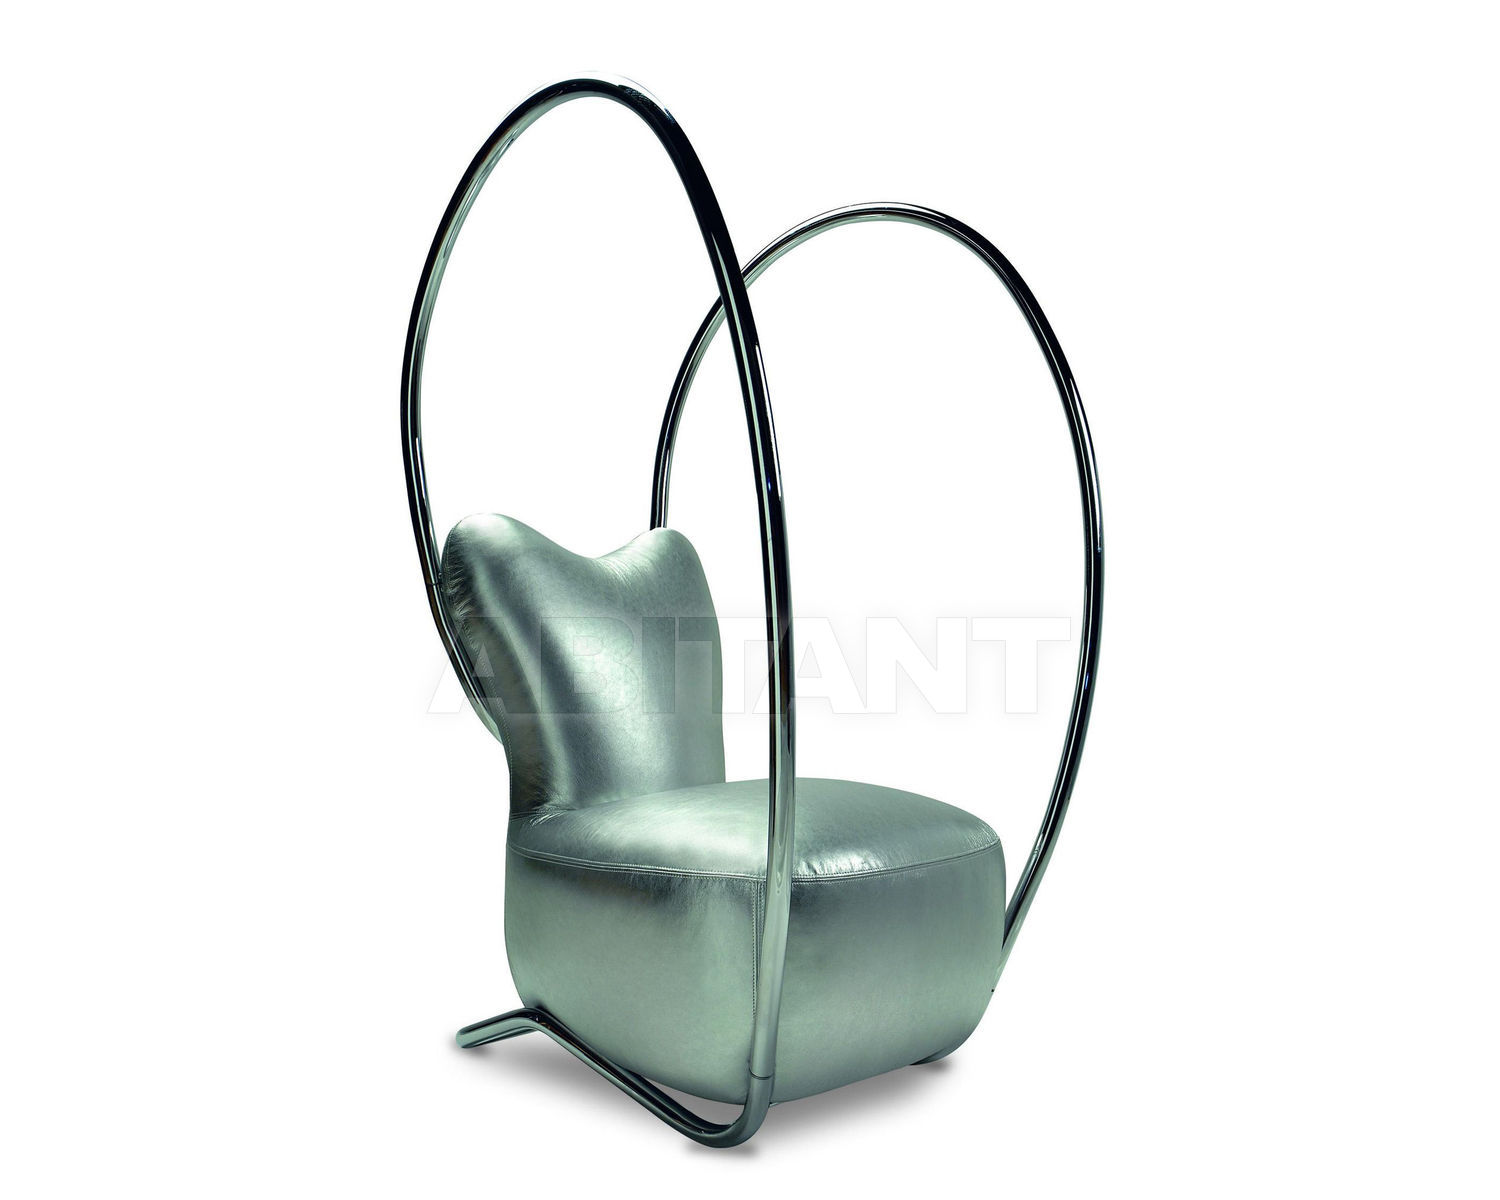 Buy Сhair SEXYCHAIR Adrenalina Sexychair SEXYCHAIR armchair